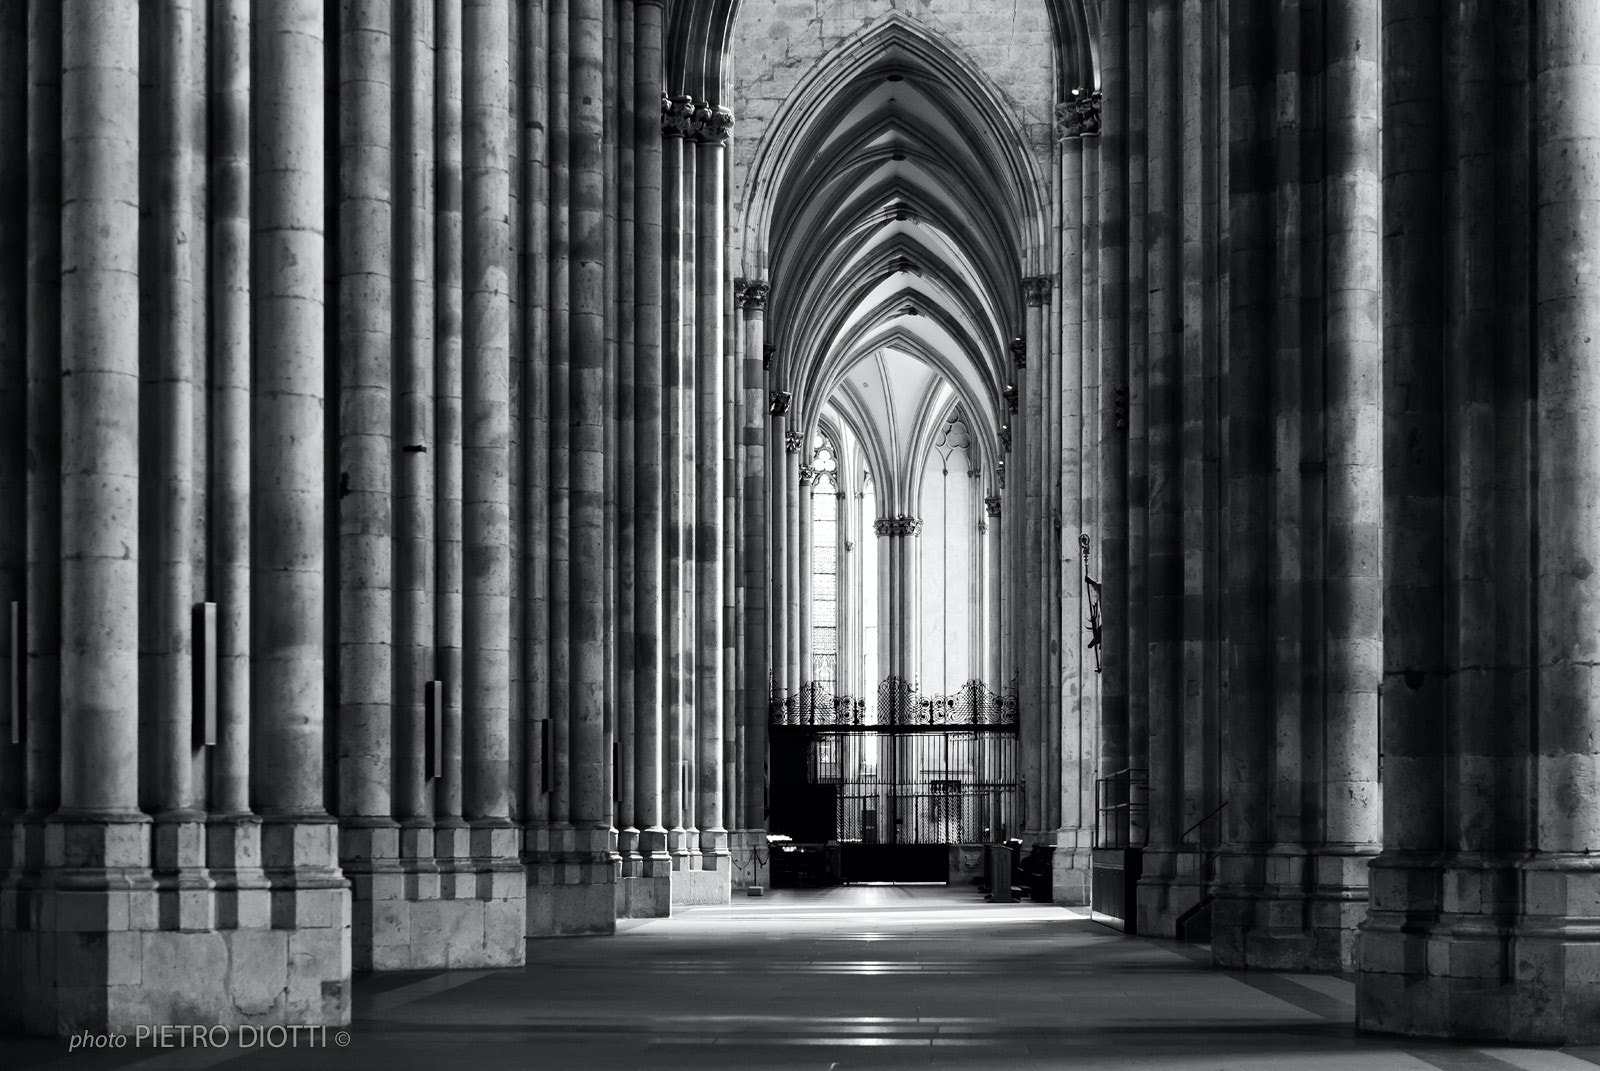 Photograph Koln 2, North Rhine-Westphalia, Germany by Pietro Diotti on 500px